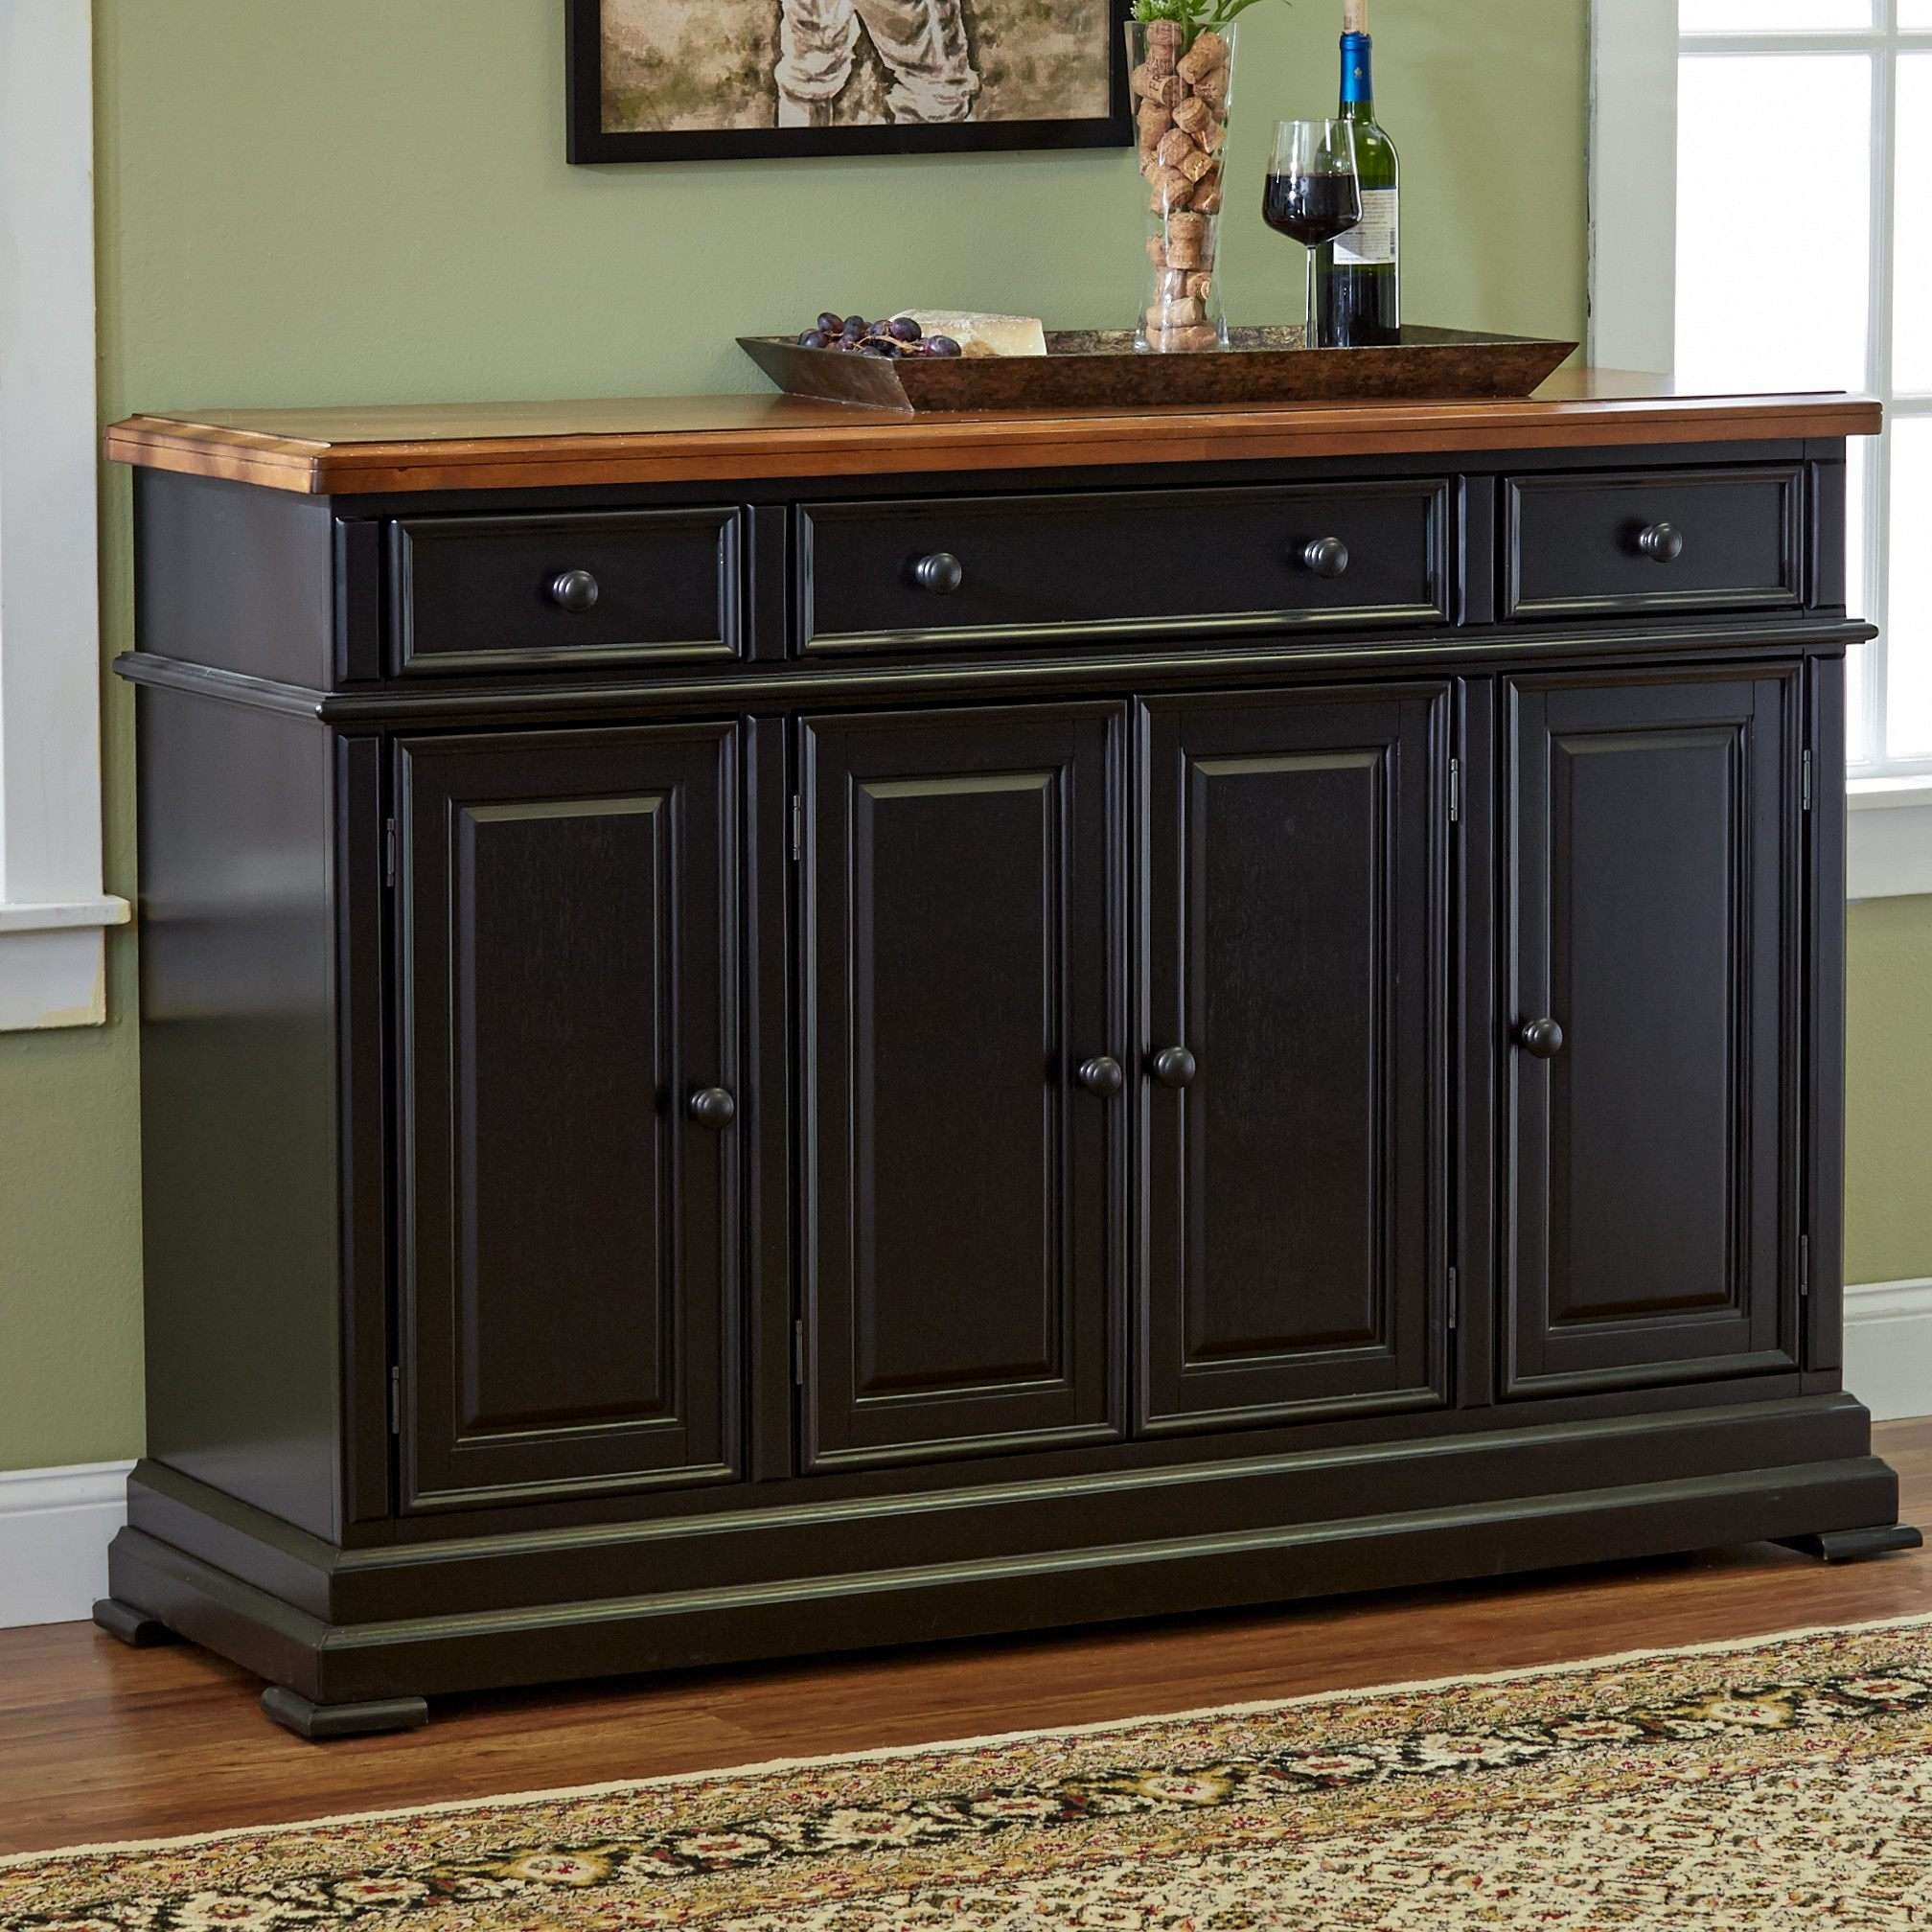 Dining Room Buffet Cabinet Antique And Long Wall Mirror Plant Pot For Dark Brown Sideboards (View 20 of 20)